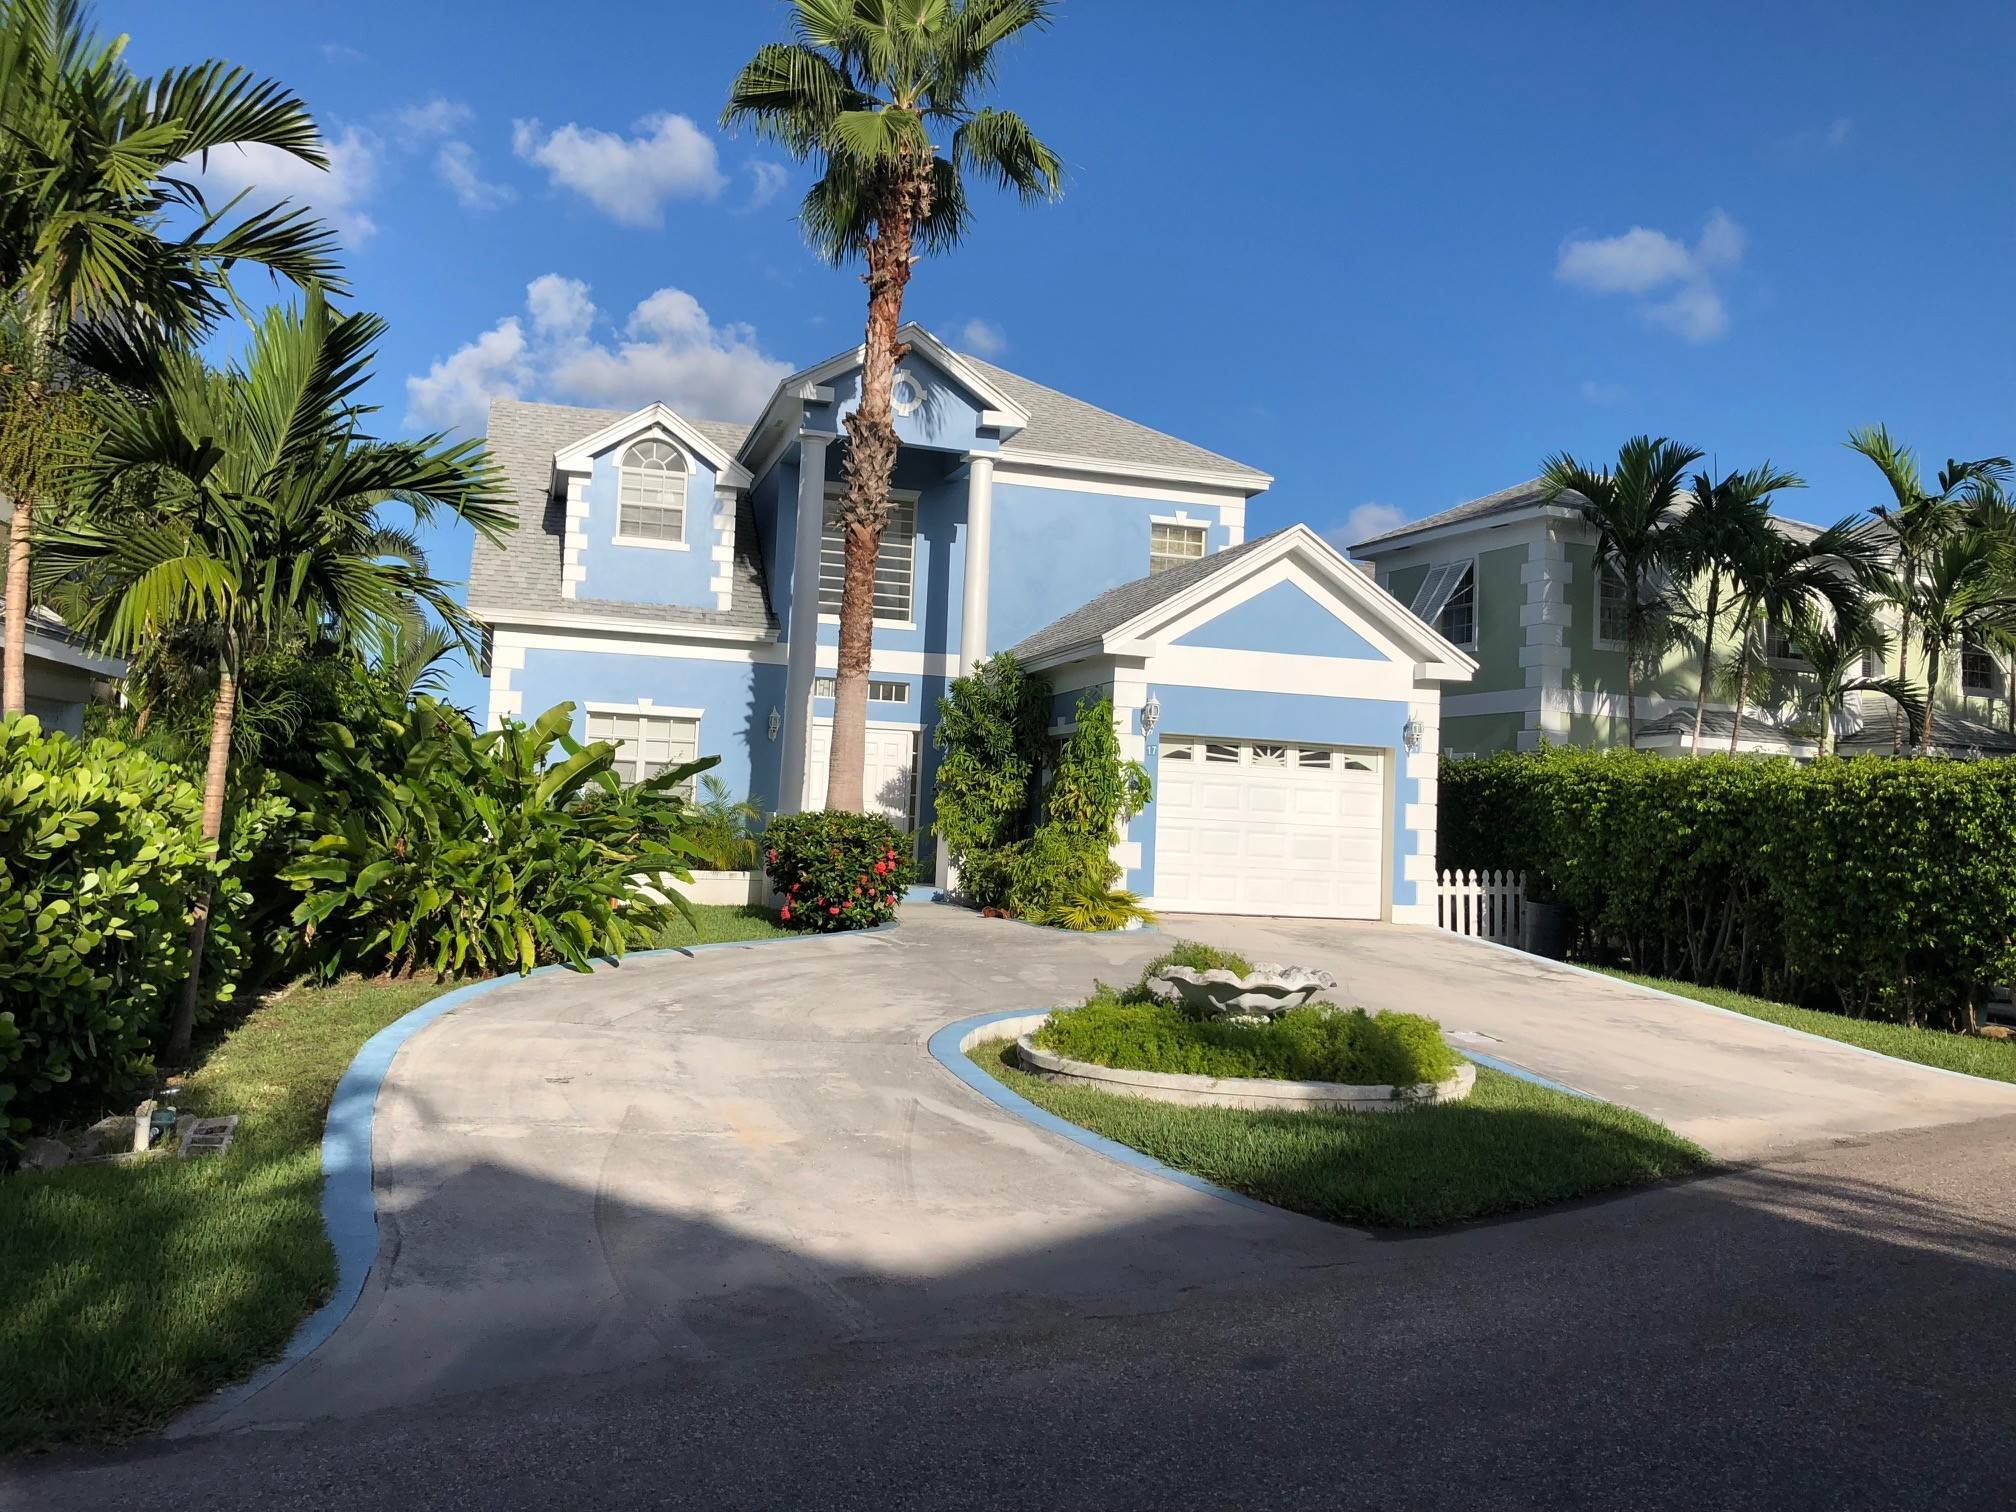 Single Family Homes for Sale at Sandyport Canal Front Home - Governor's Cay Sandyport, Cable Beach, Nassau And Paradise Island Bahamas